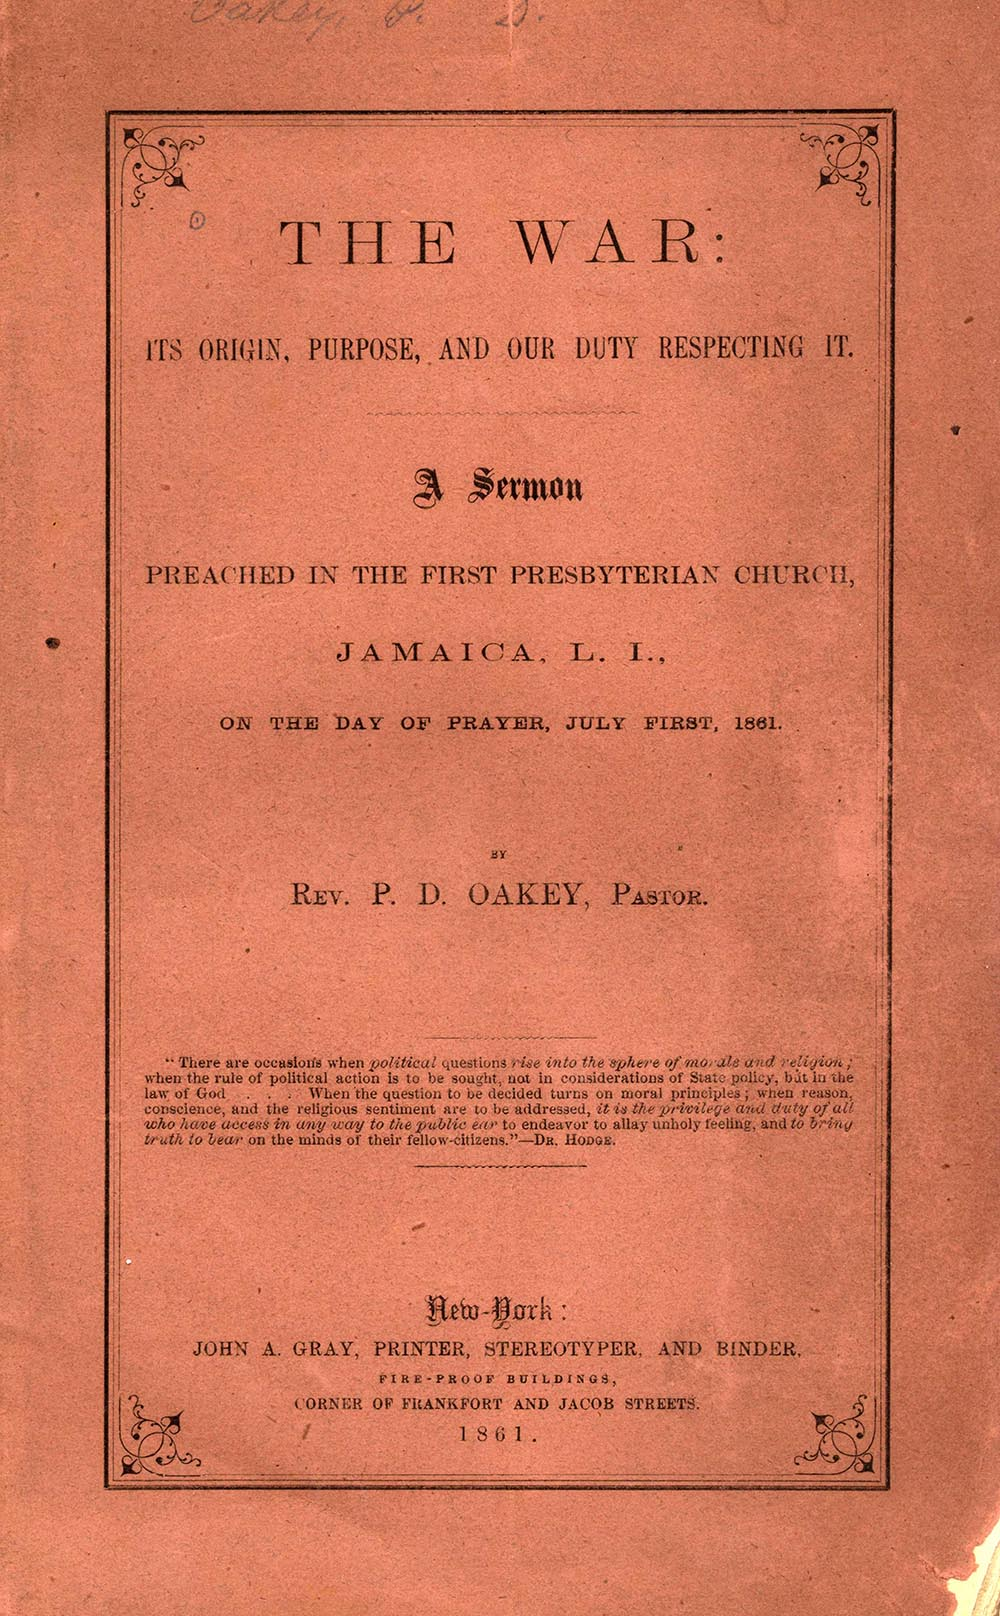 Cover of pamphlet sermon by P. D. Oakey, The War, Its Origins, Purpose